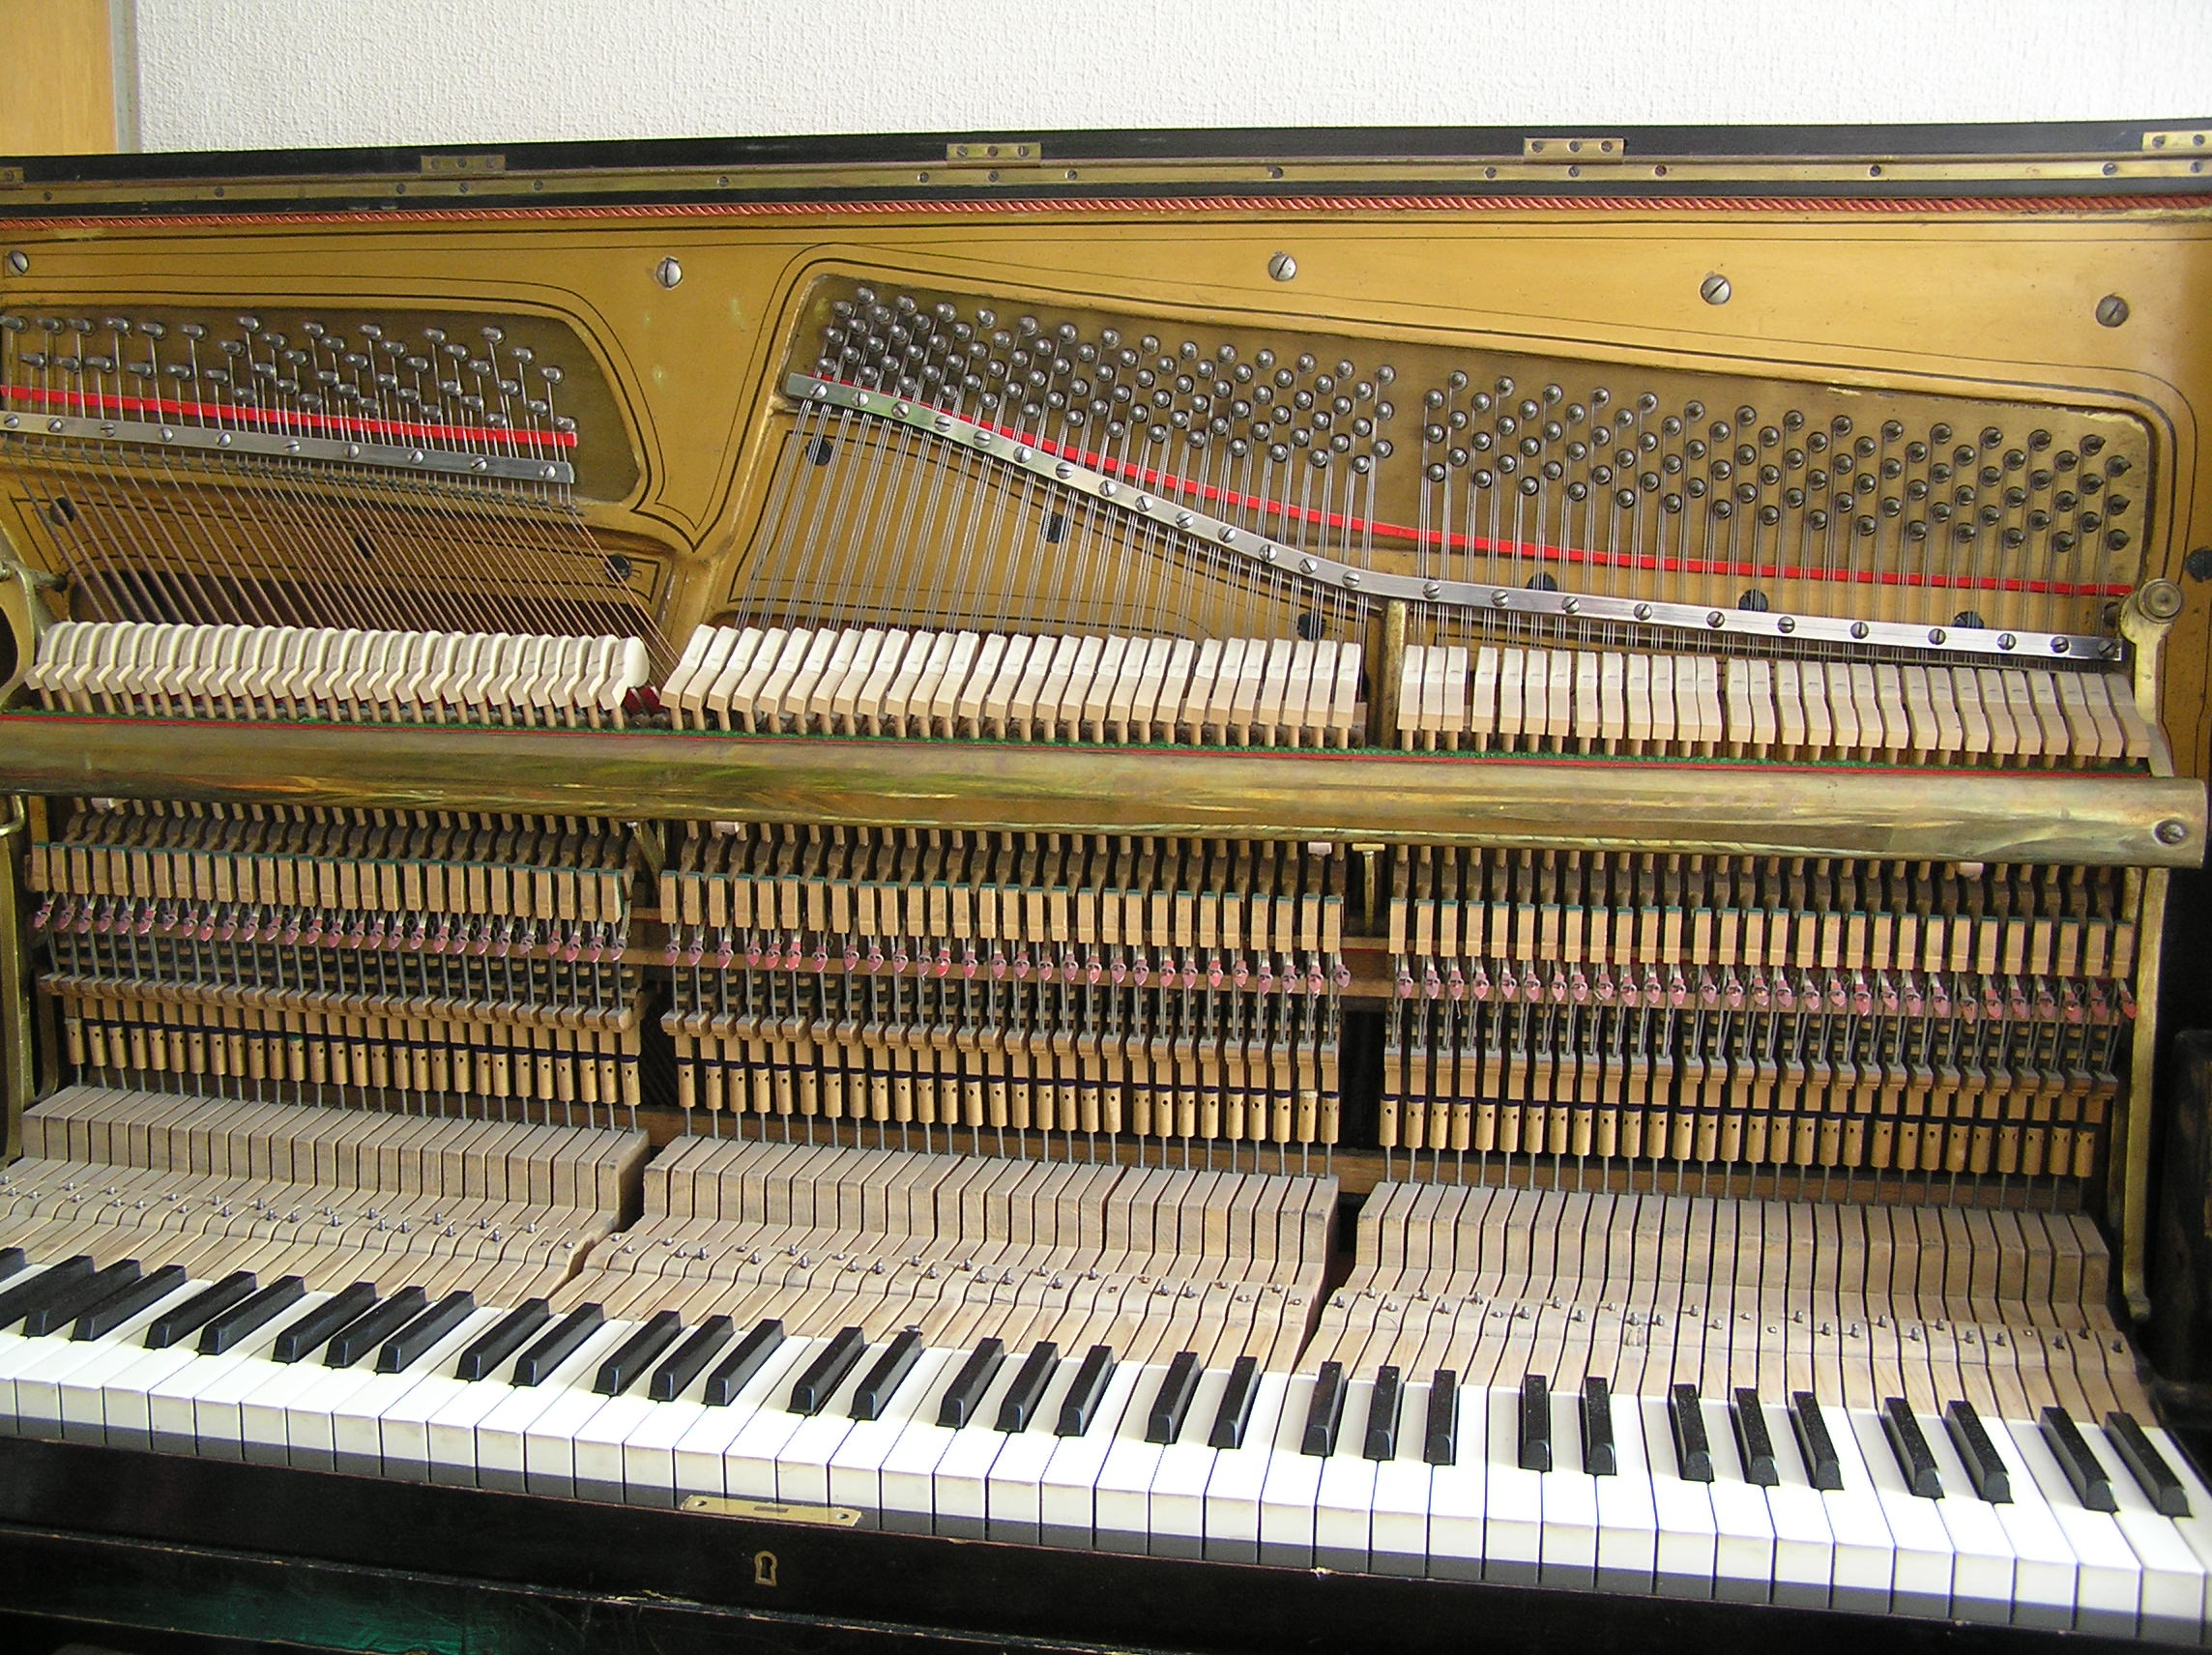 Upright Piano Strings